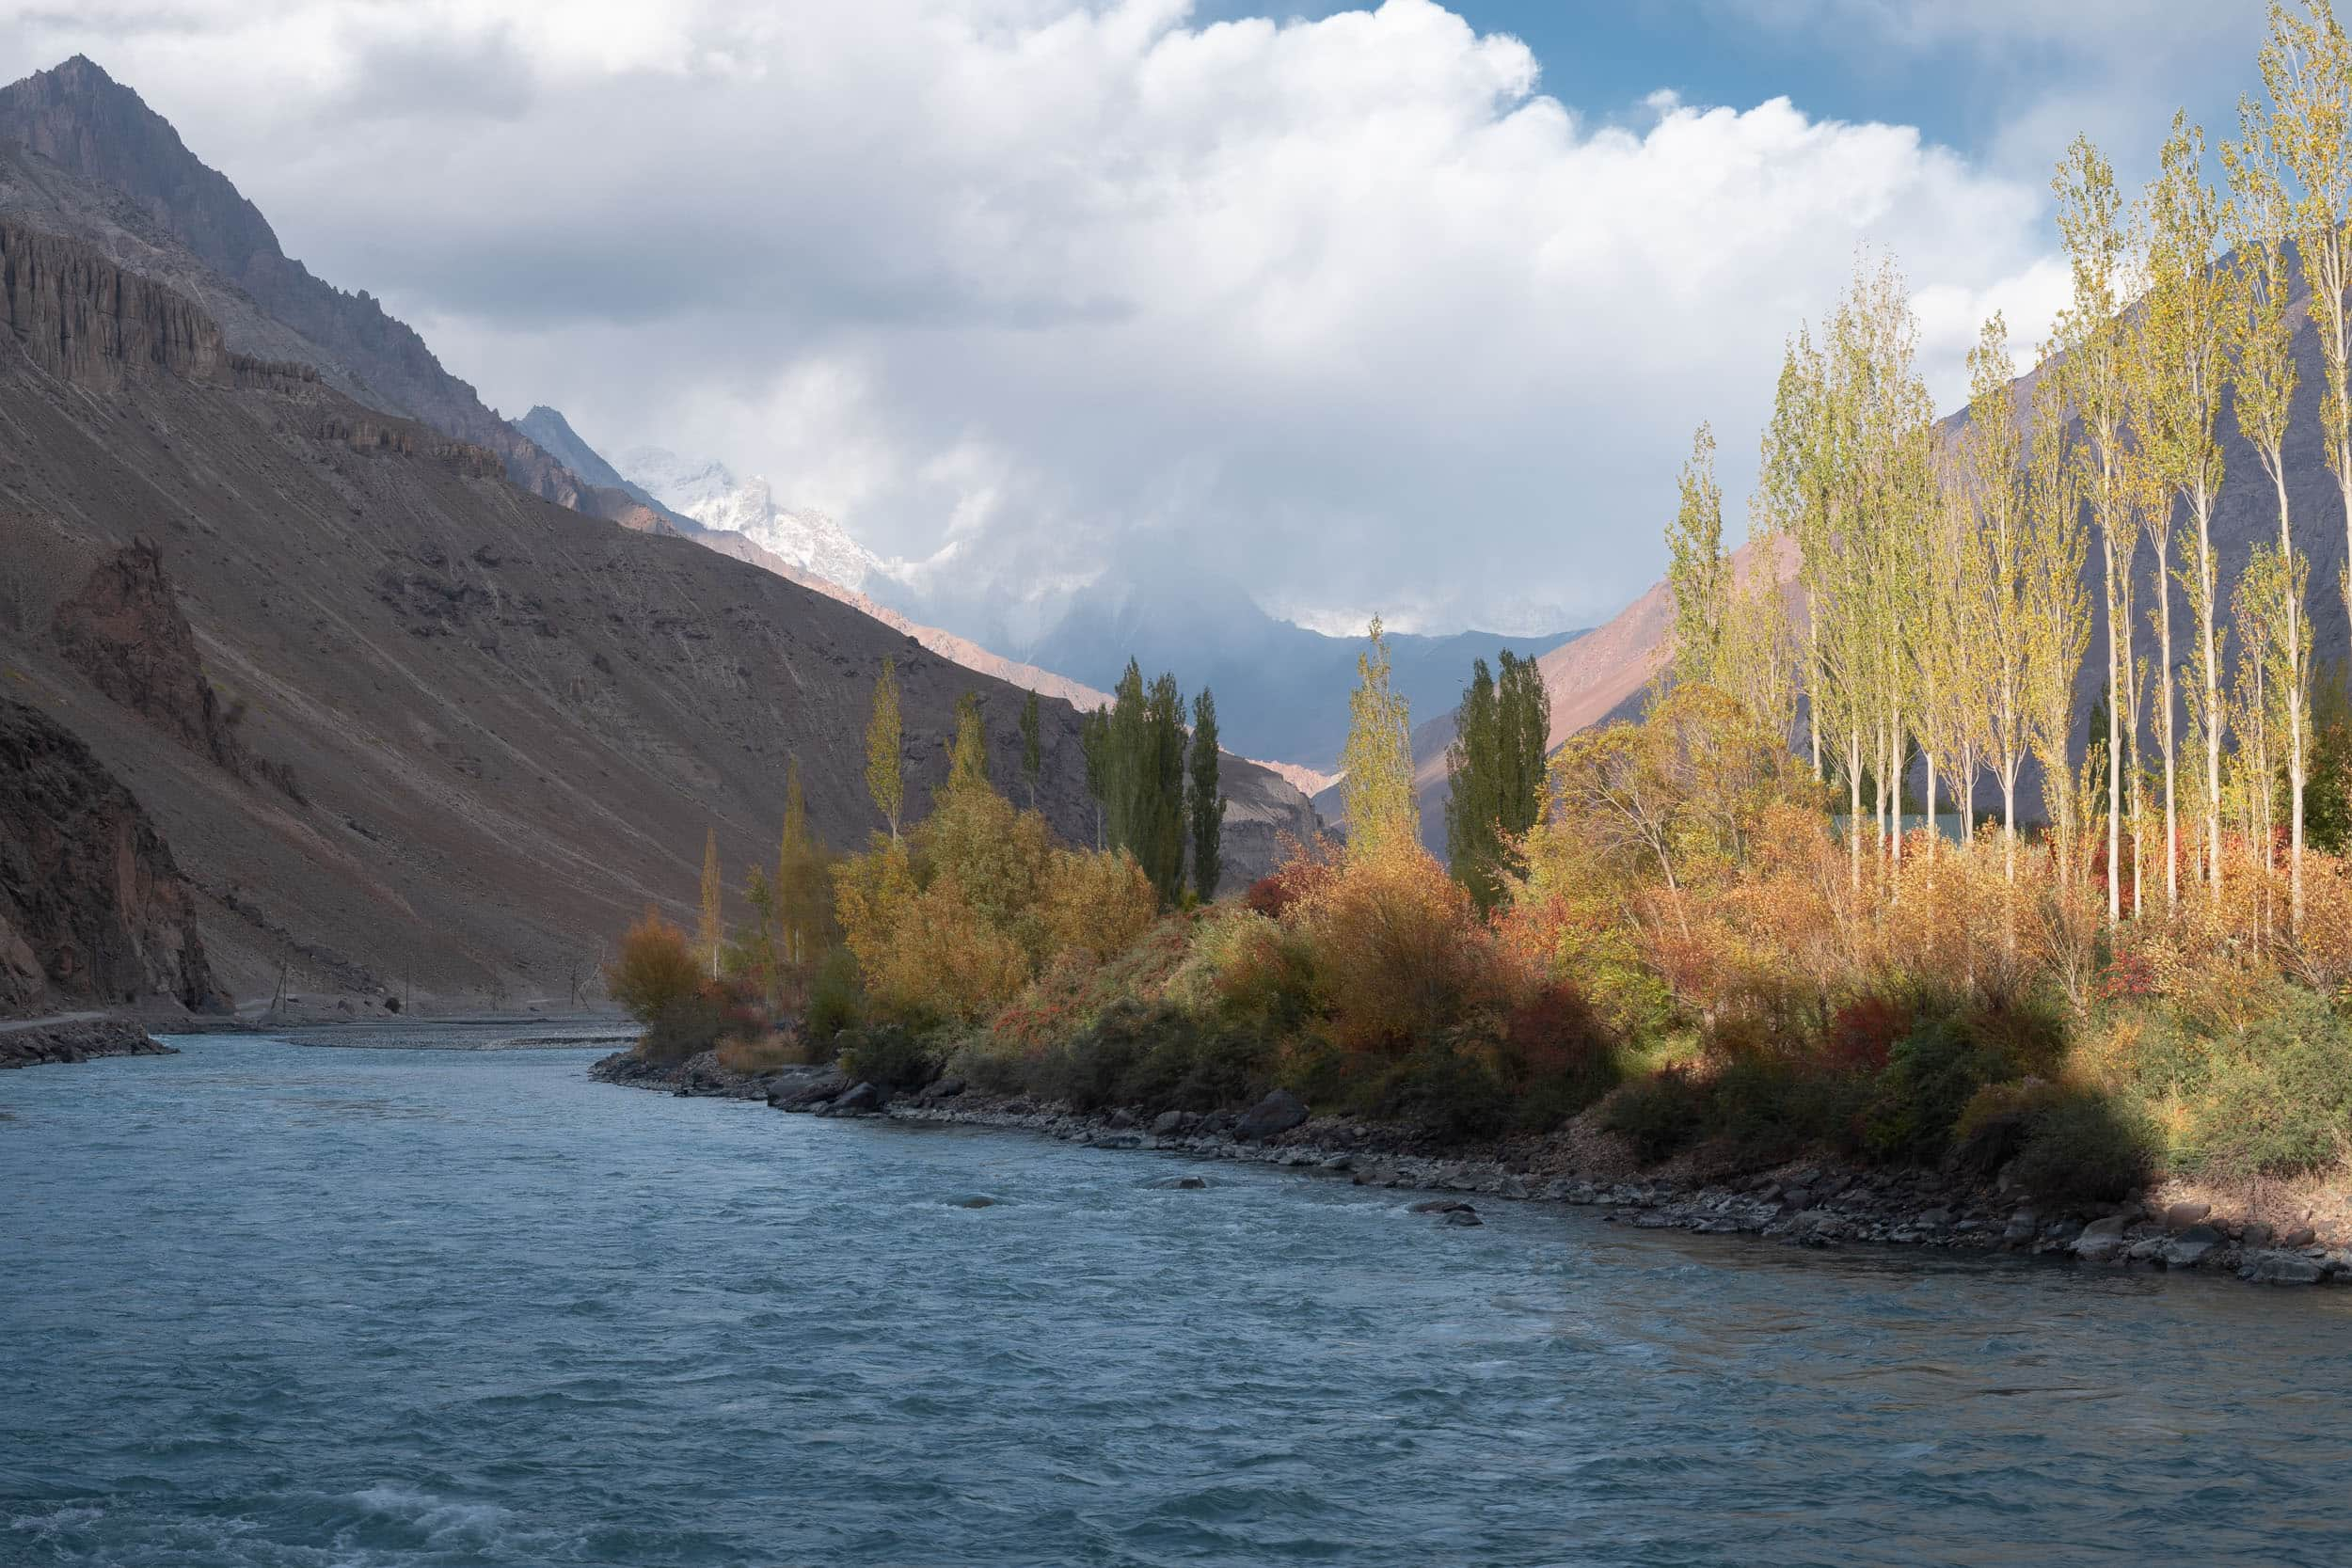 Bartang valley in autumn